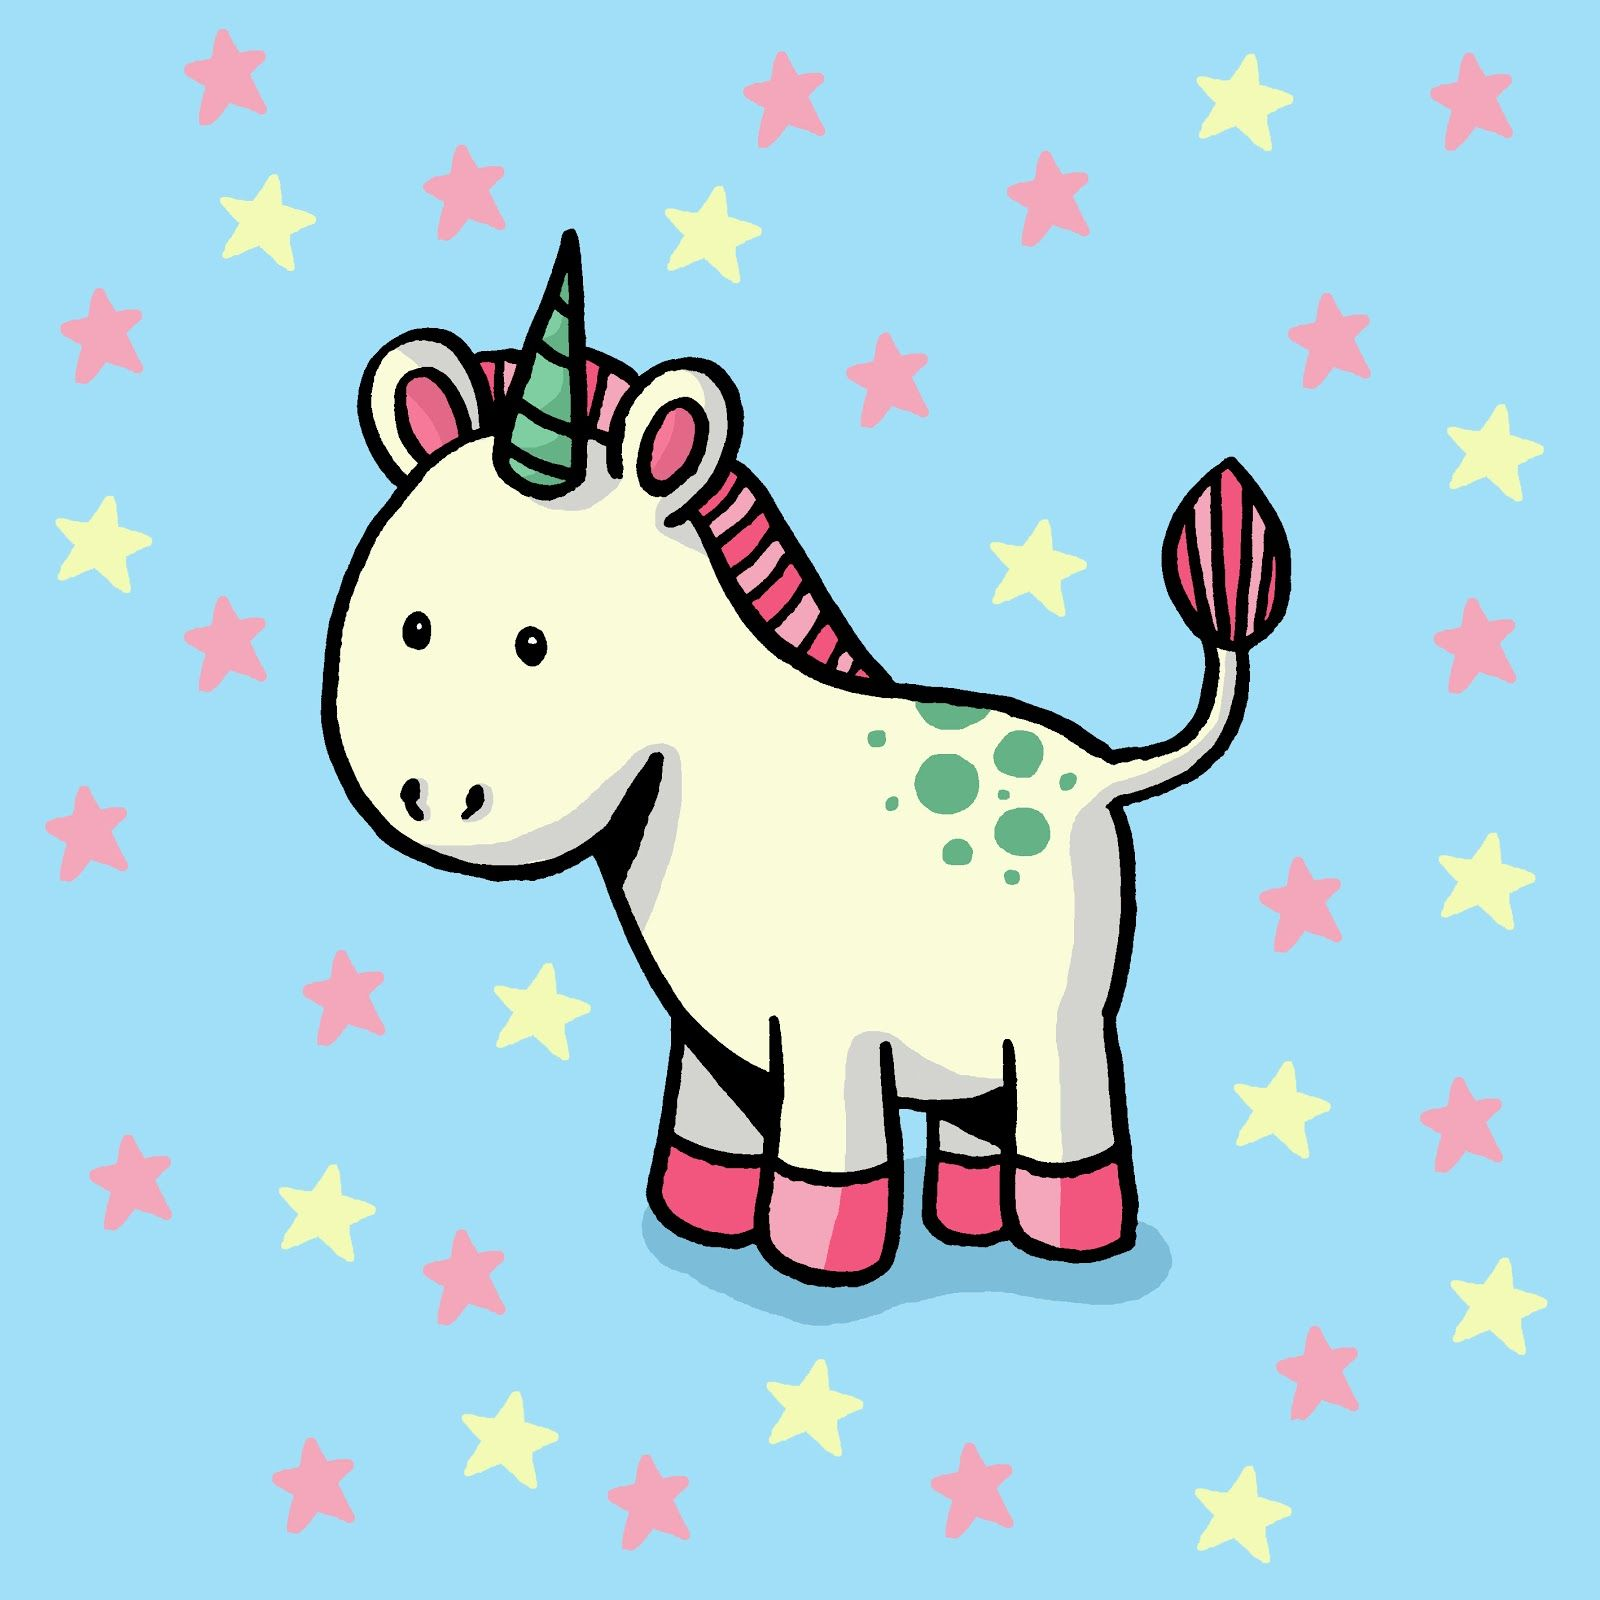 cute unicorn - Google претрага | Printables | Pinterest ...